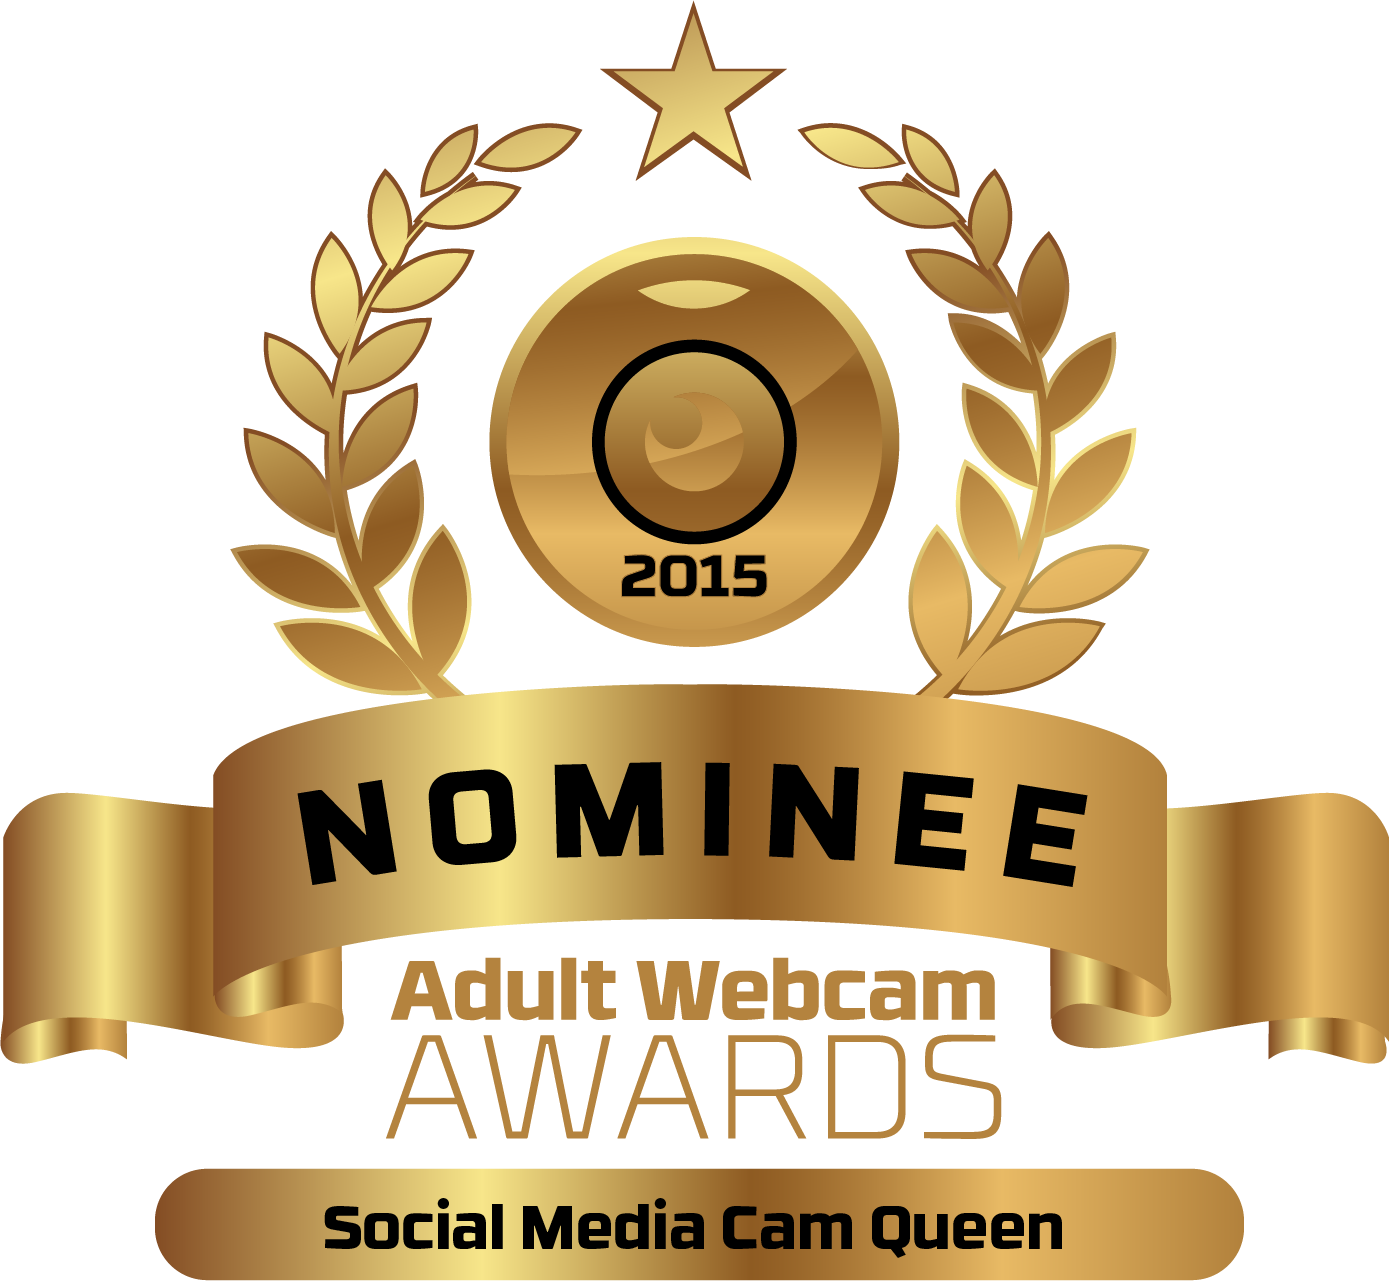 Social Media Cam Queen Nominee